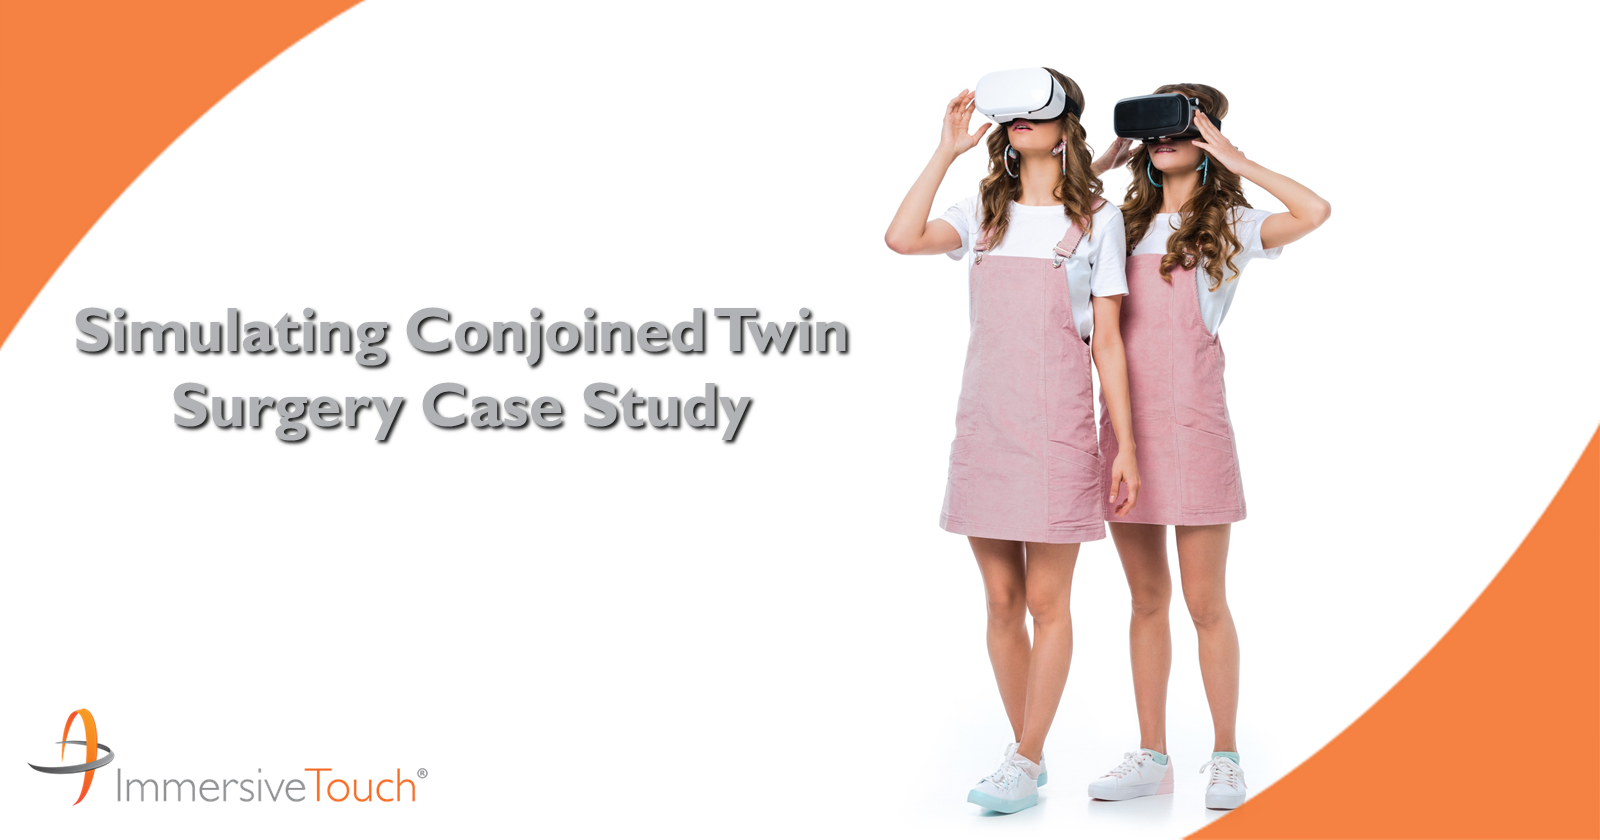 conjoined-twin-simulating-surgery-immersivetouch-header.png